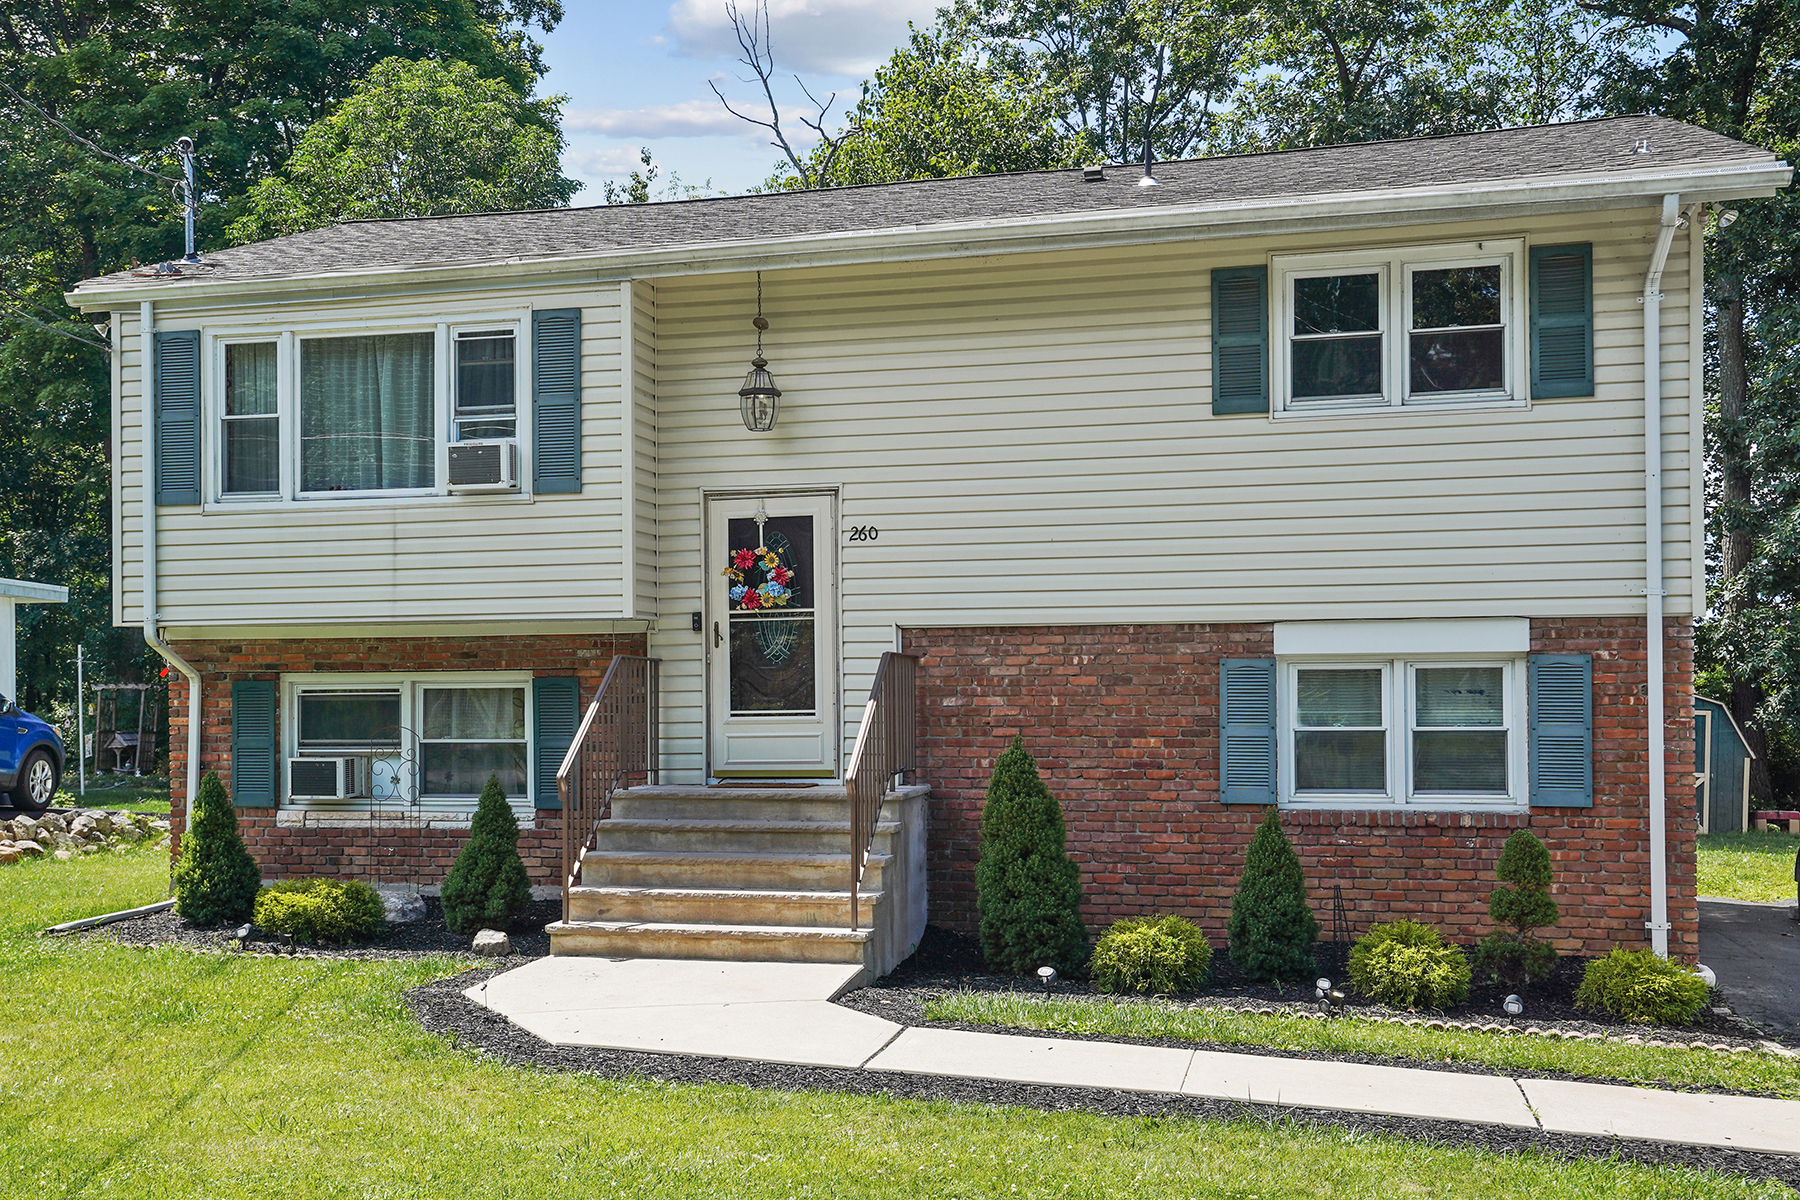 Single Family Homes for Active at Spacious Bi-Level 260 Dupont Avenue Hopatcong, New Jersey 07843 United States